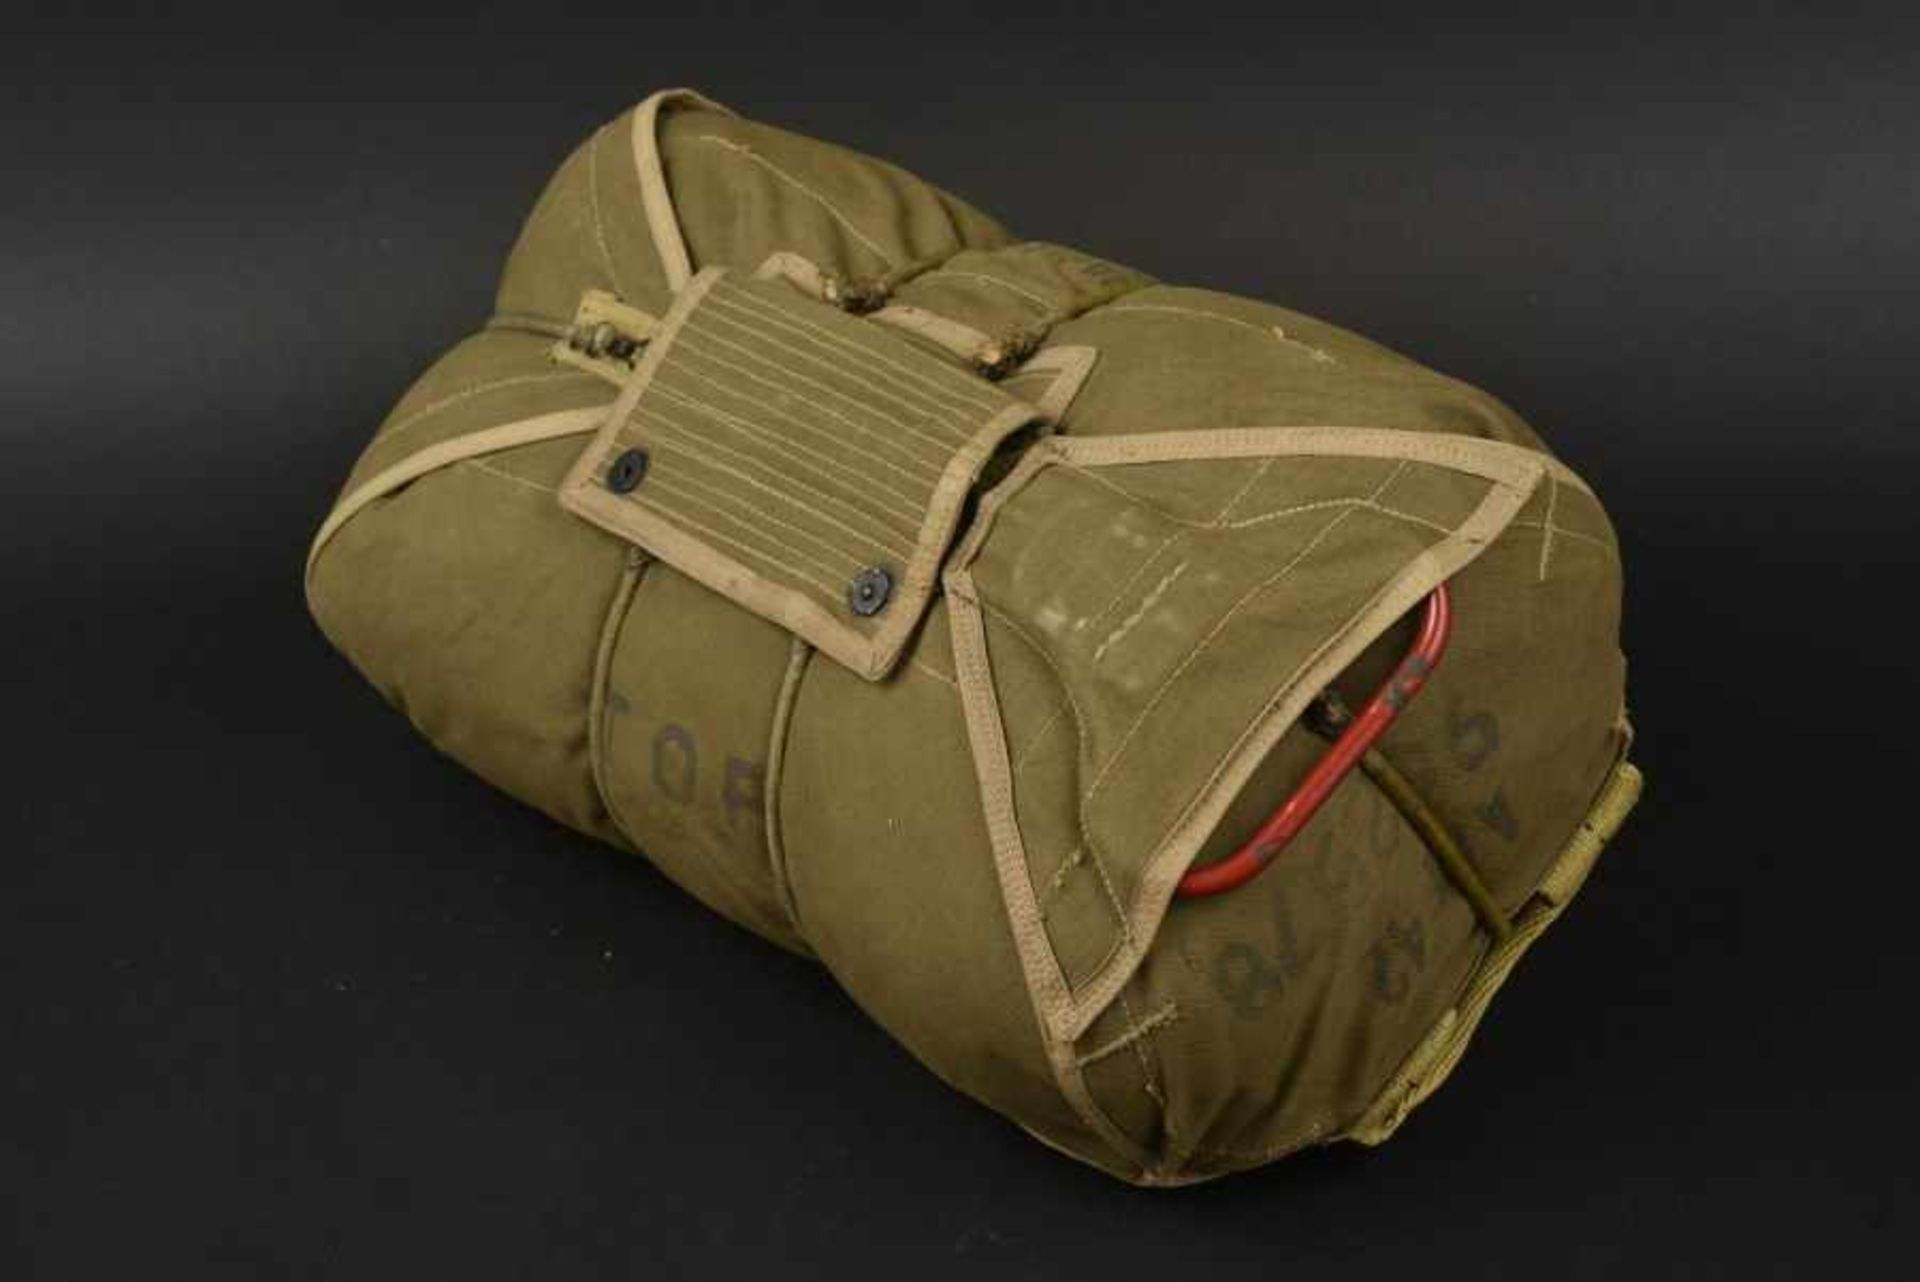 Los 27 - Parachute ventral du 377th Régiment de la 101ème Airborne. Front-mounted parachute of the 377th